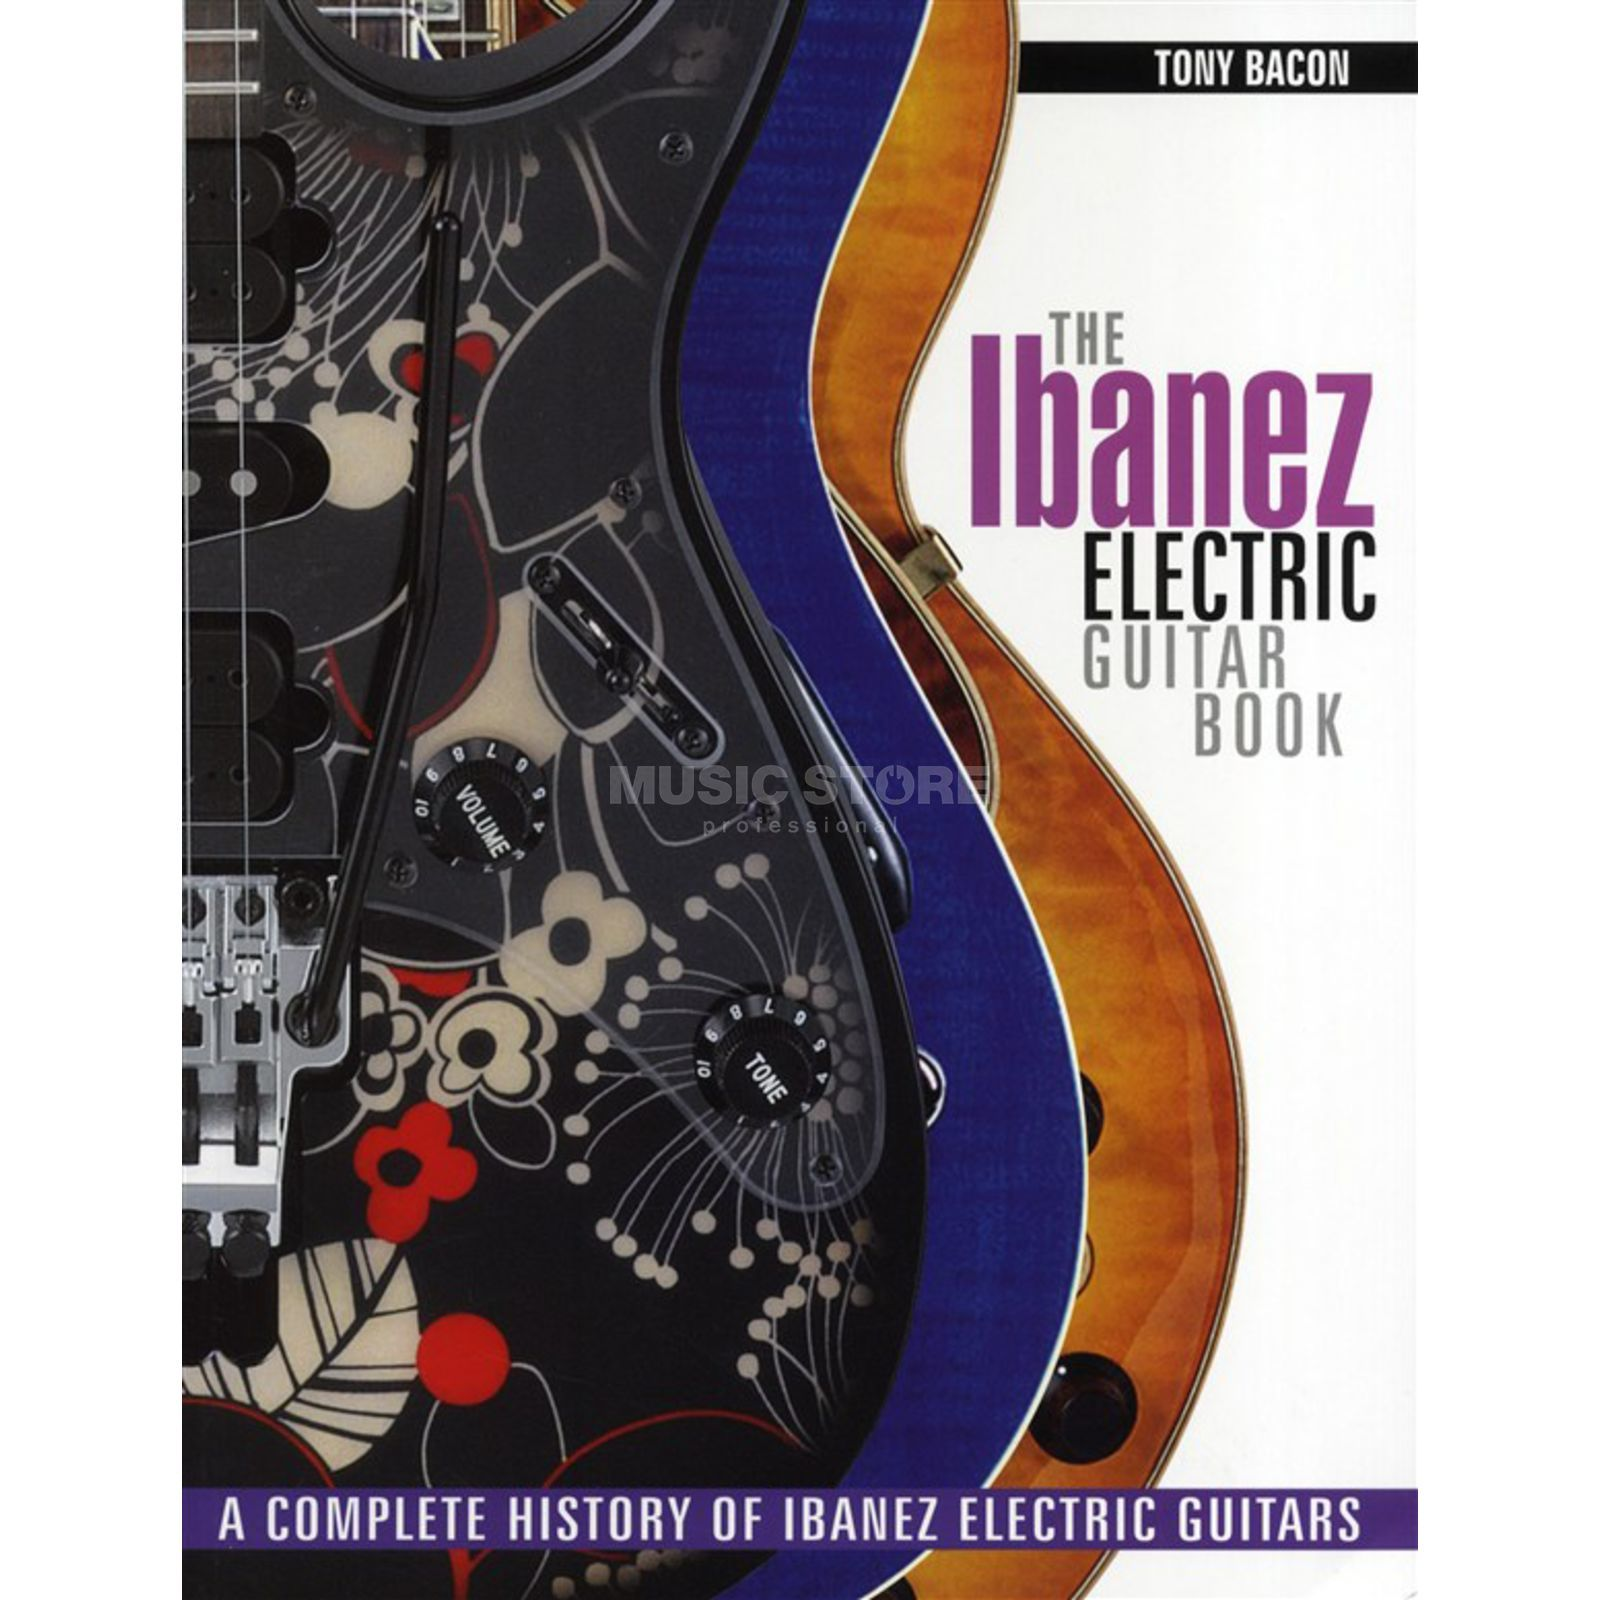 Hal Leonard Ibanez Electric Guitar Book Tony Bacon Produktbillede